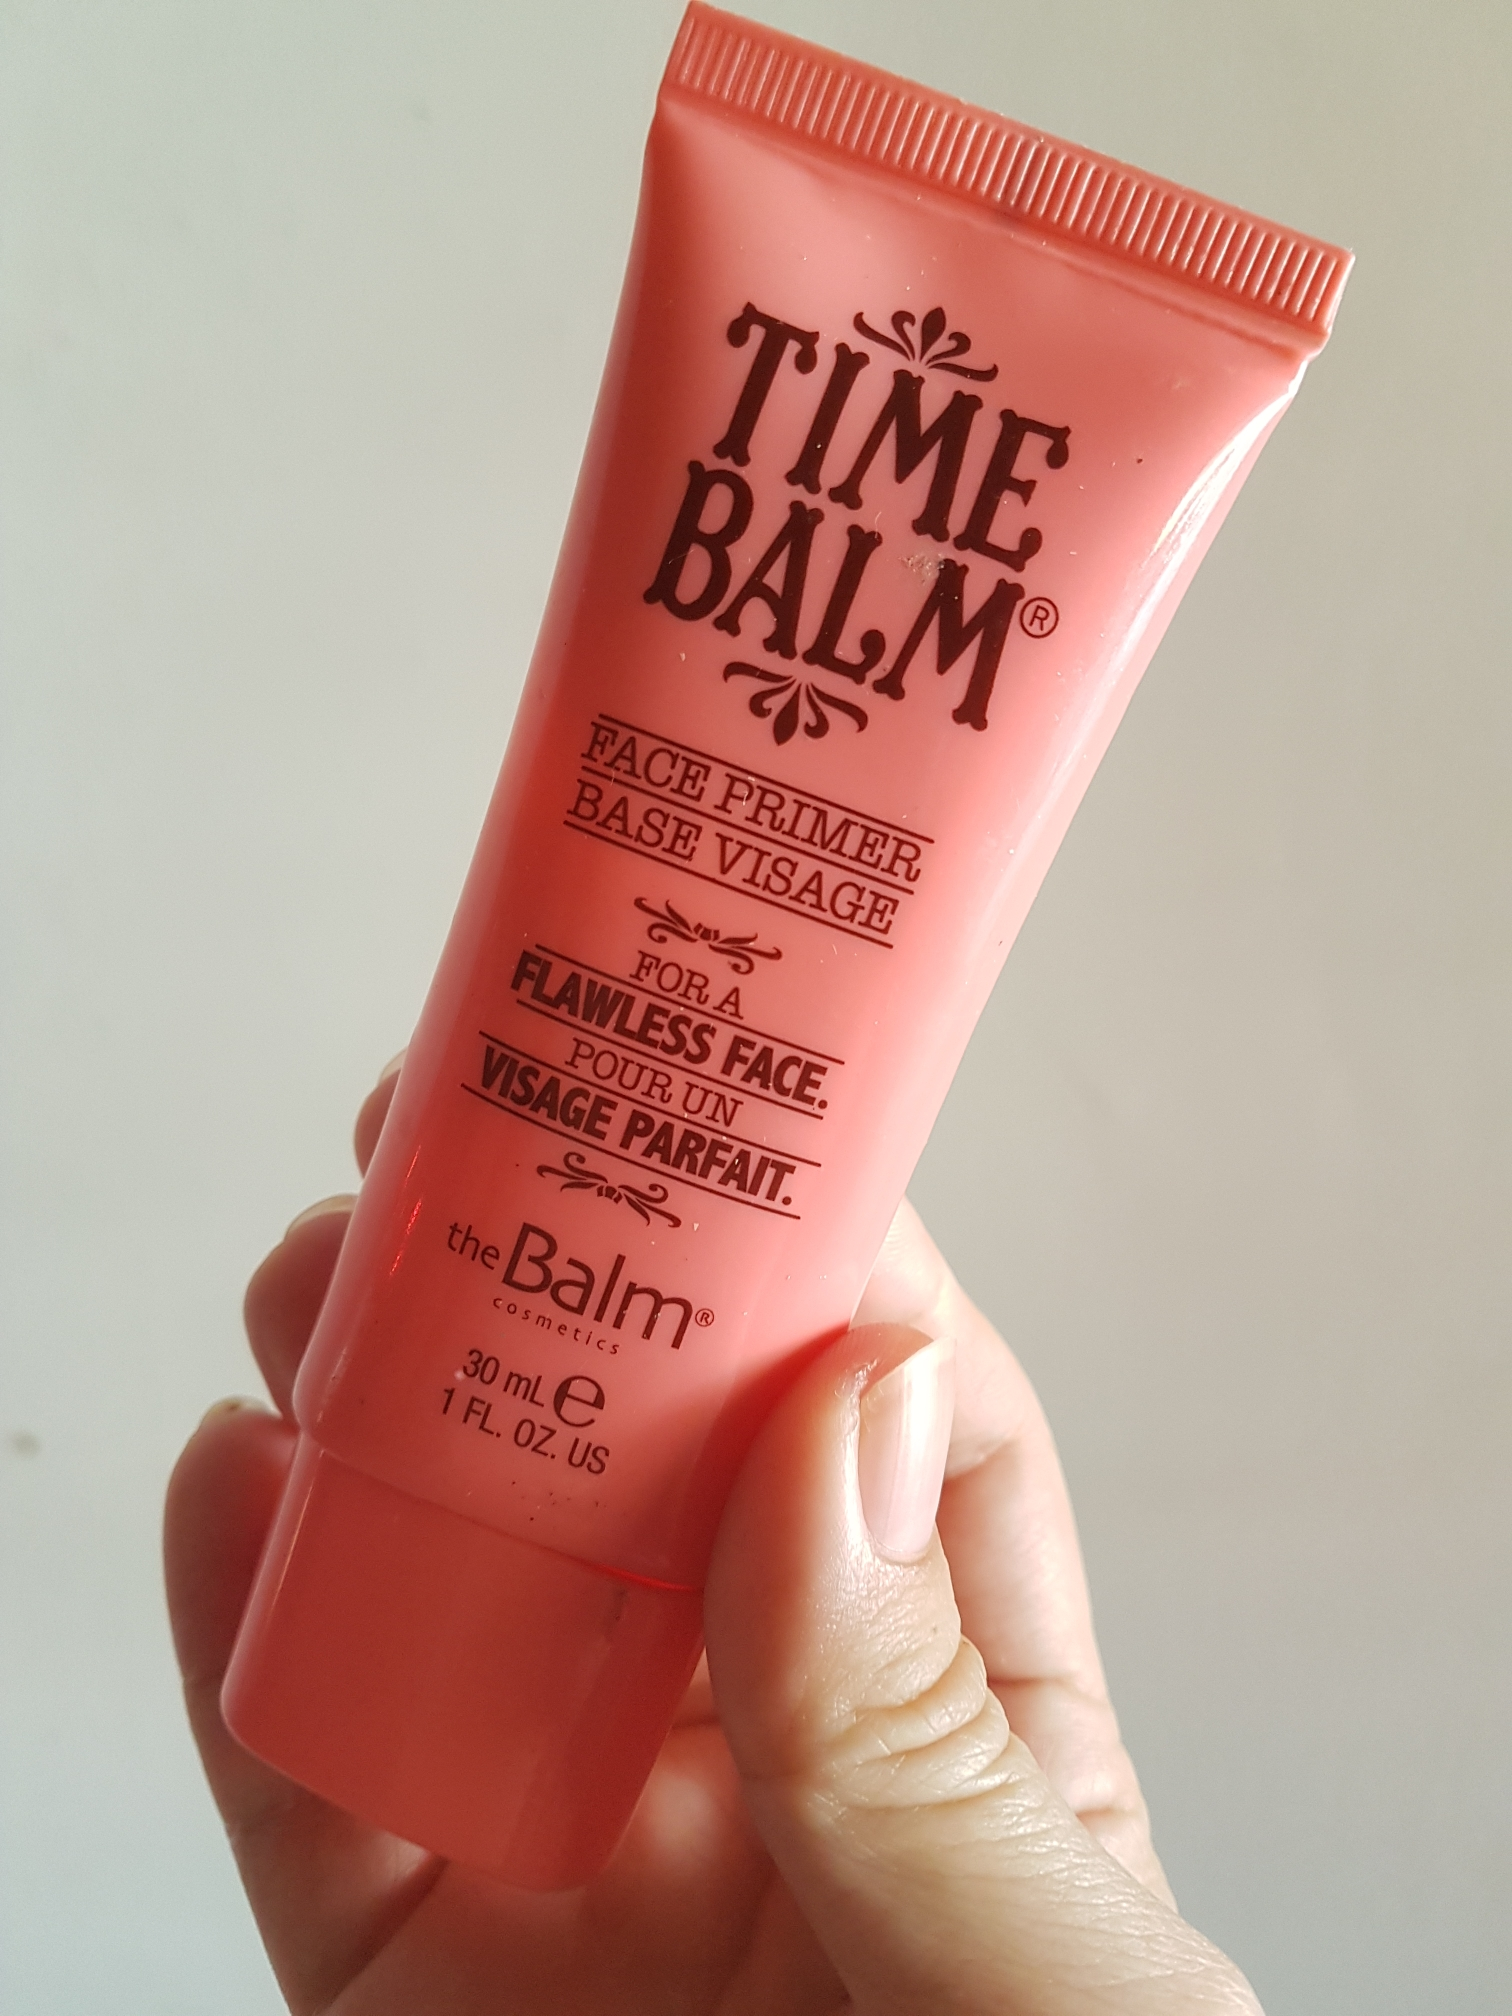 the balm face primer review